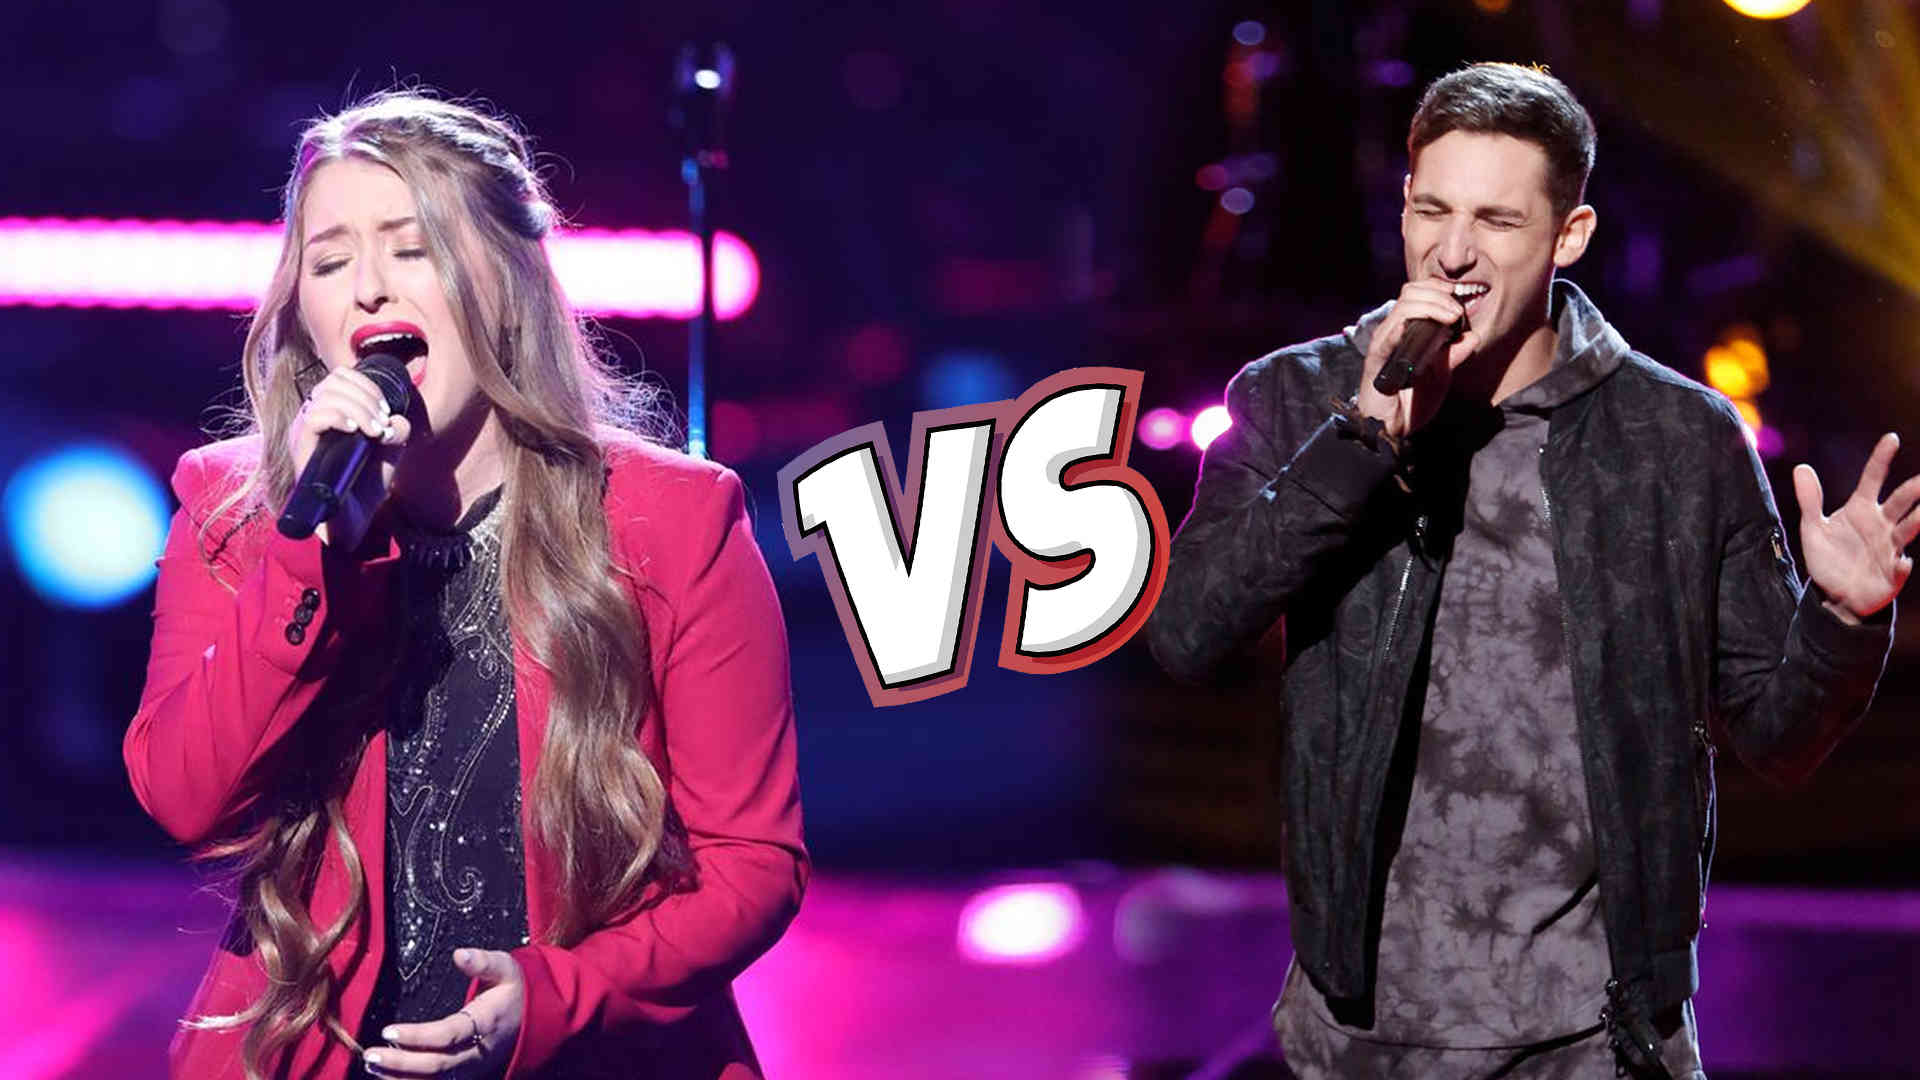 Watch The Voice USA 2018 Knockout Alexa Cappelli vs Jorge Eduardo full Performance Video 9 April 2018